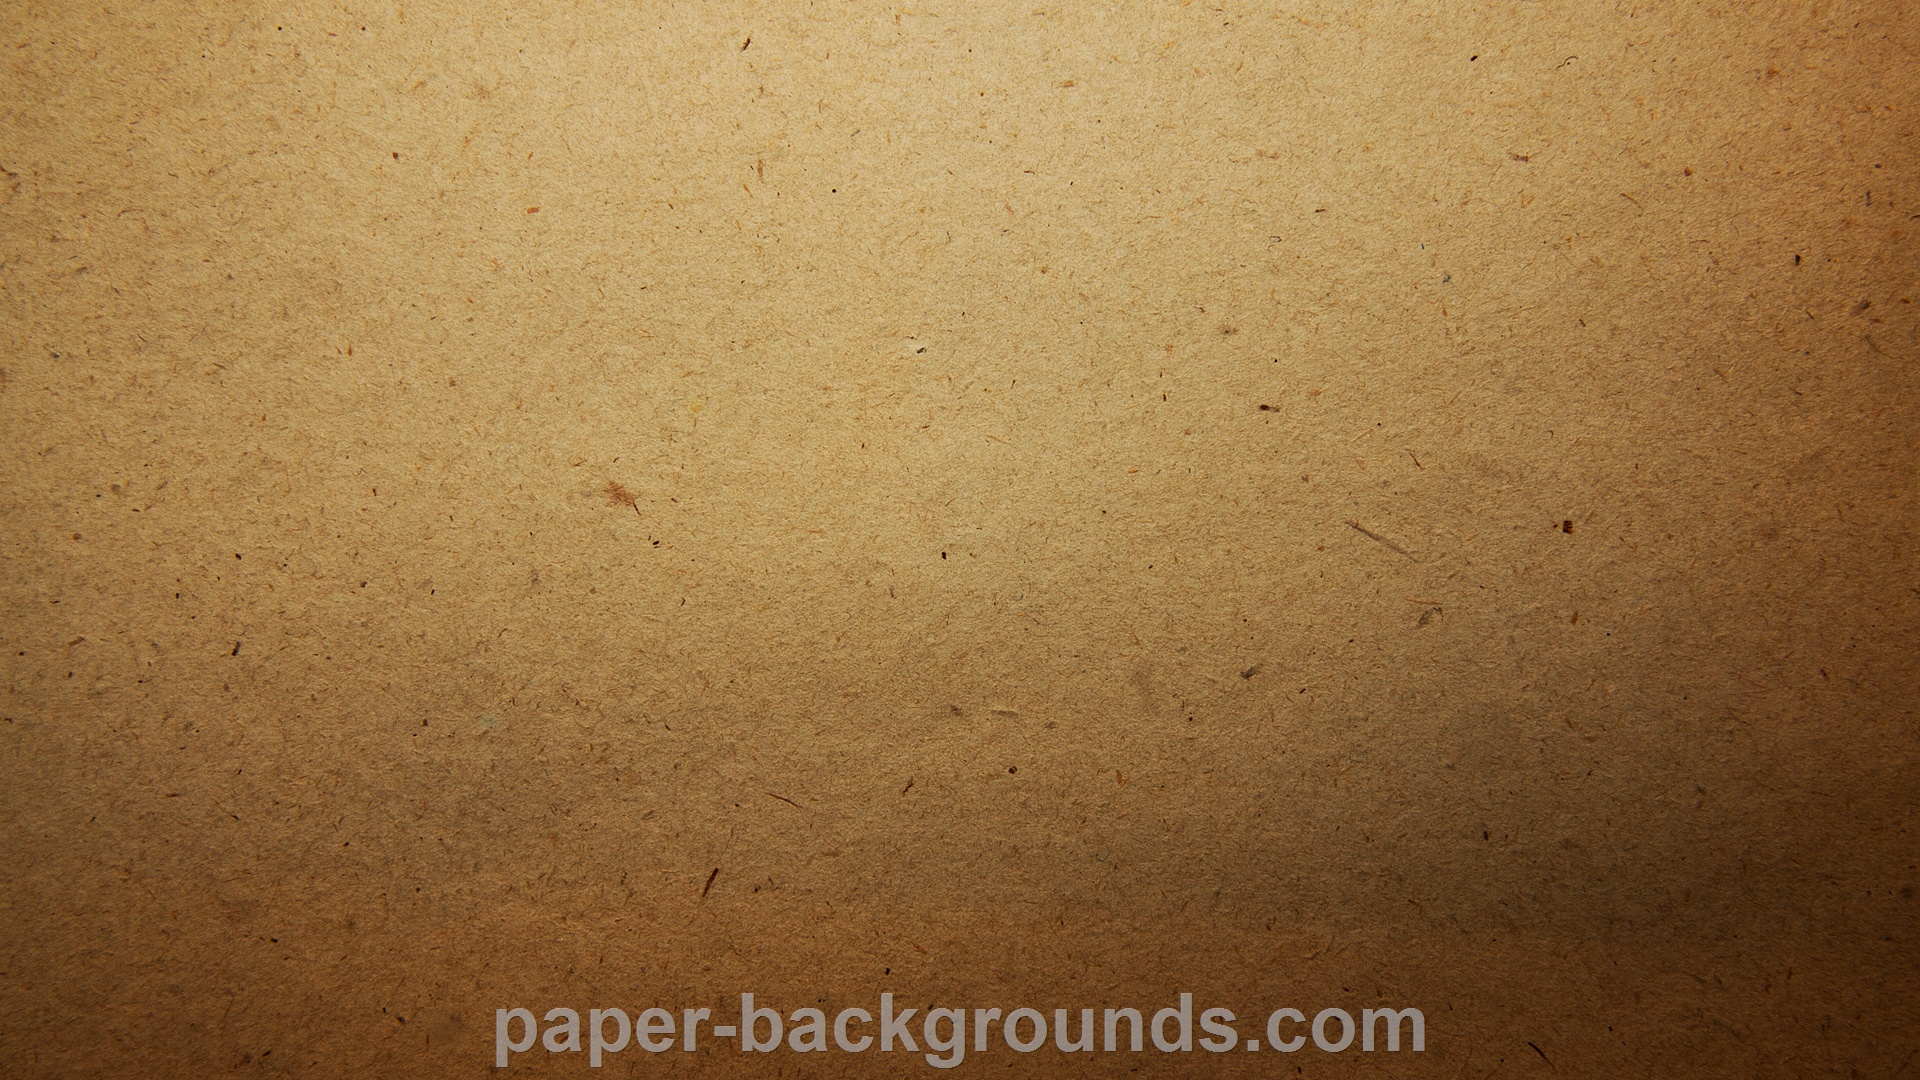 Paper backgrounds paper backgrounds royalty free hd for Paper wallpaper